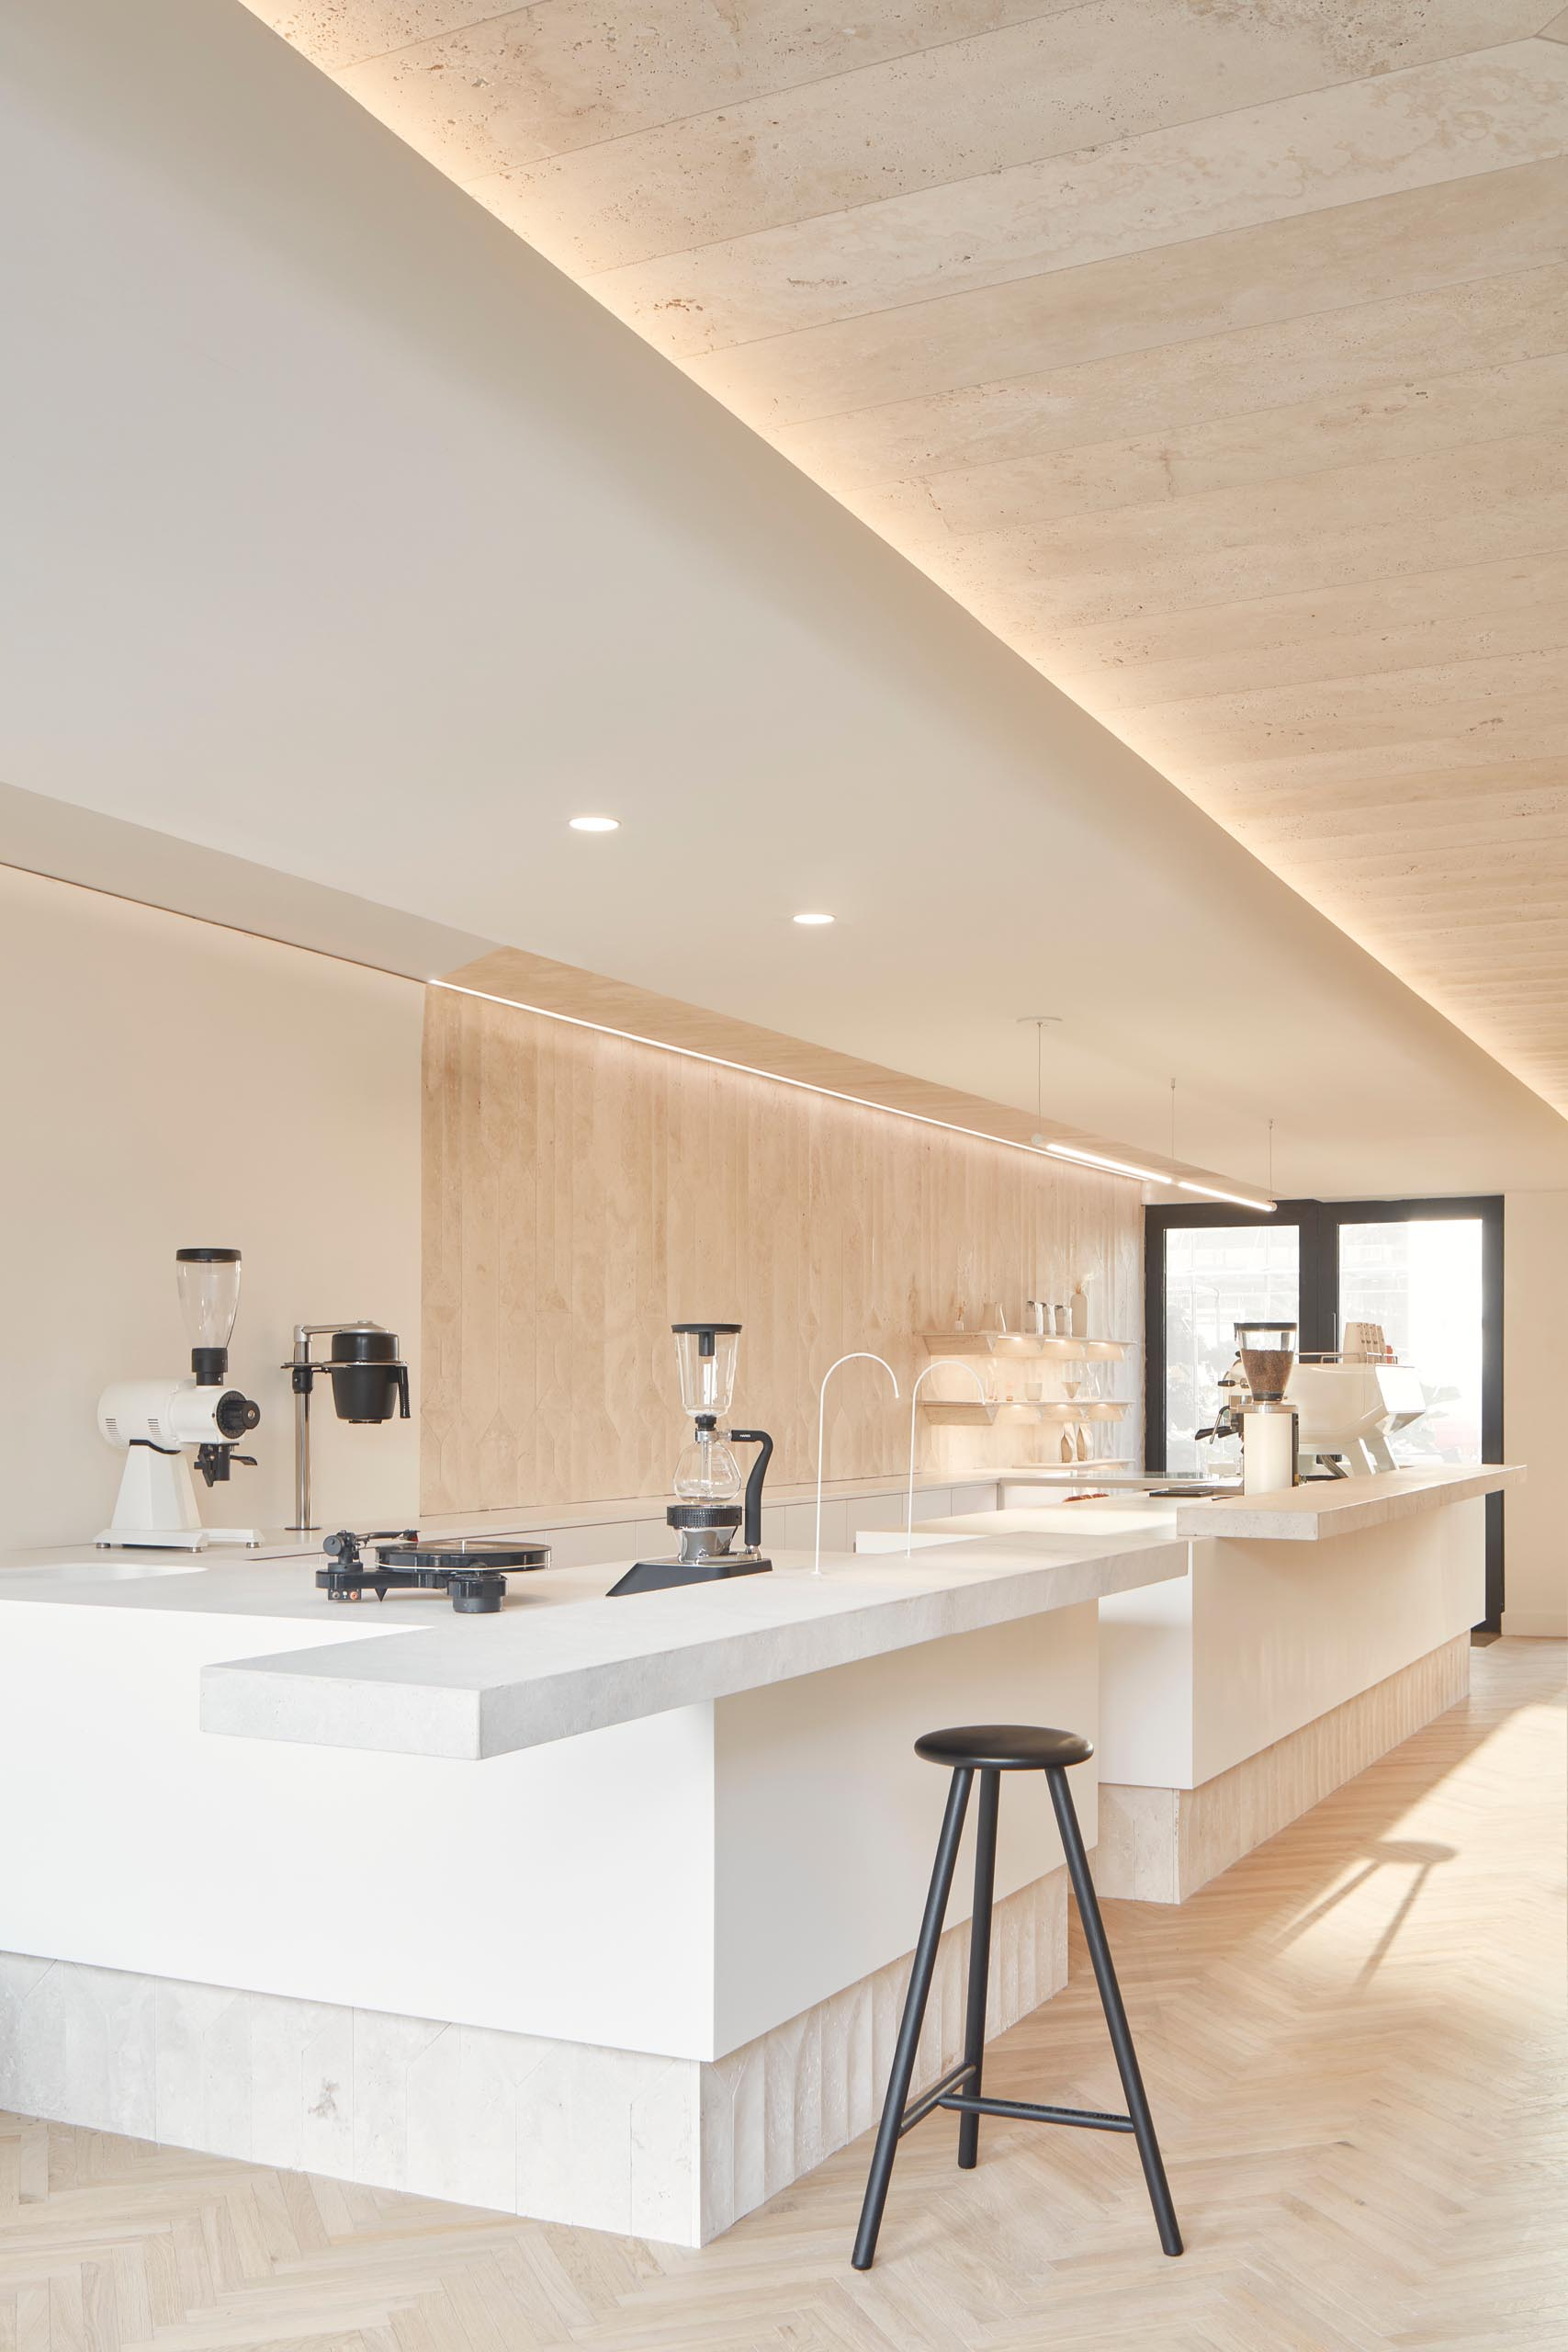 A modern coffee shop inside a shipping container has a large bar, herringbone wood floors, and travertine walls.